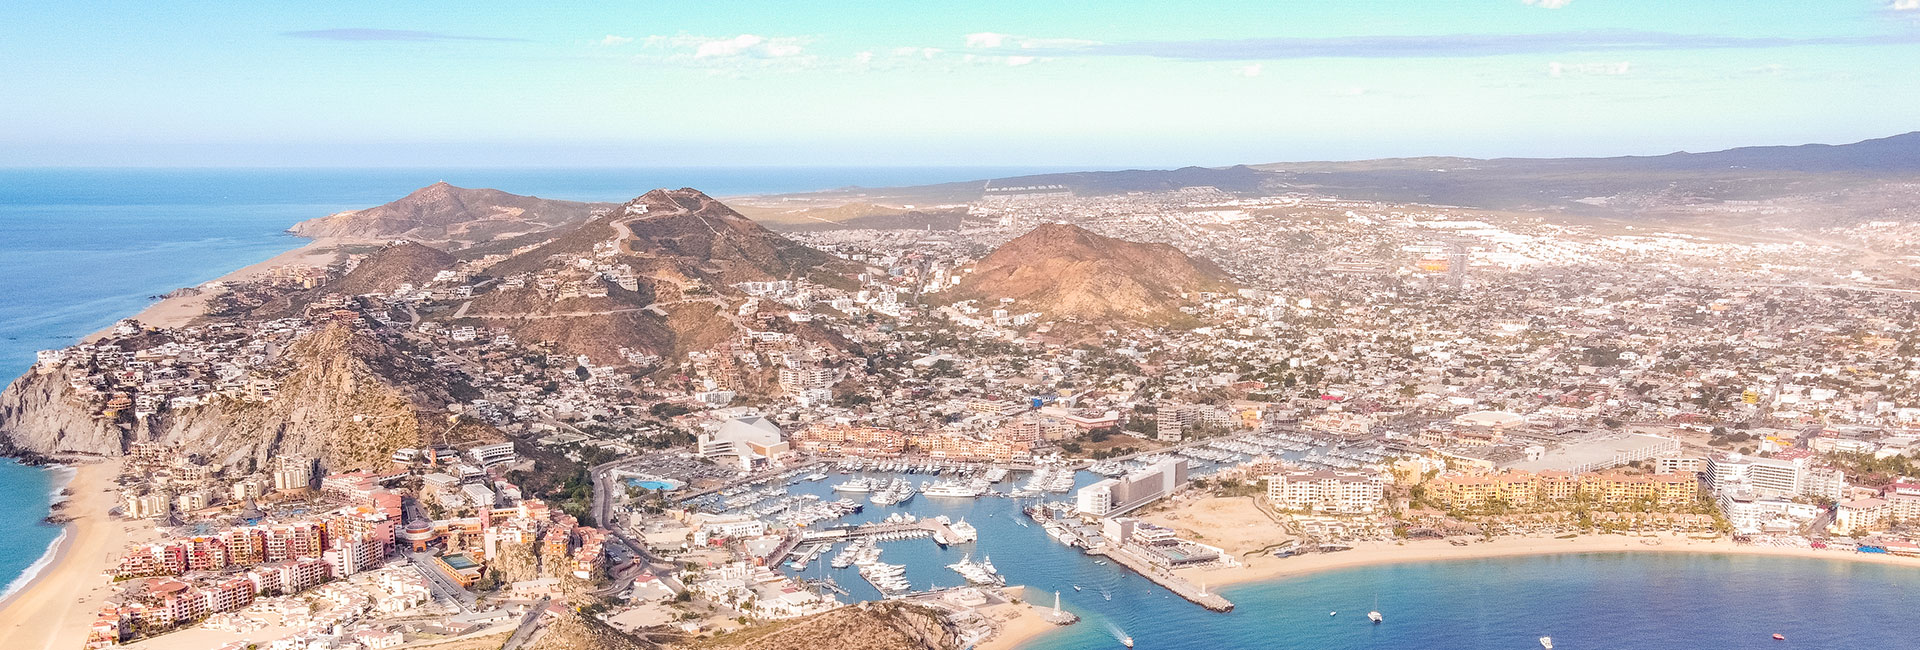 Best time of year to visit cabo san lucas mexico